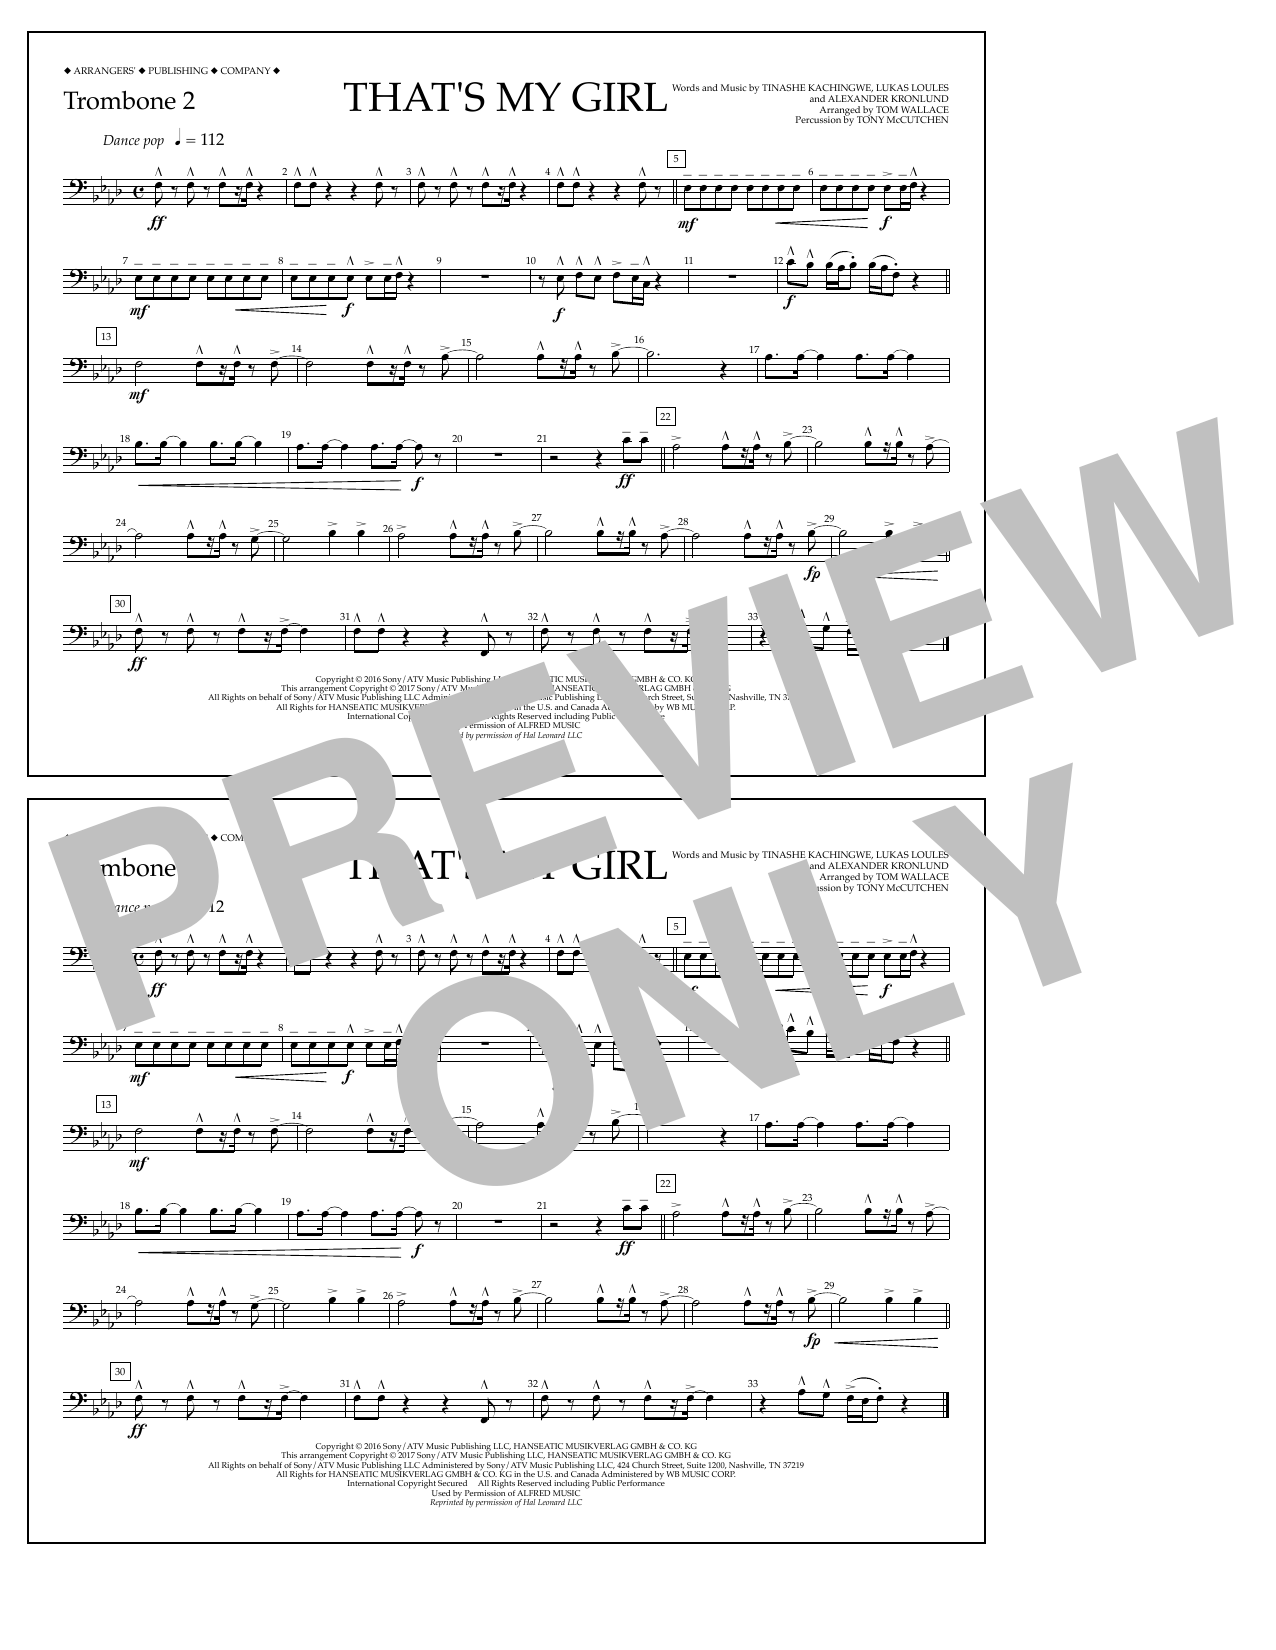 That's My Girl - Trombone 2 Sheet Music